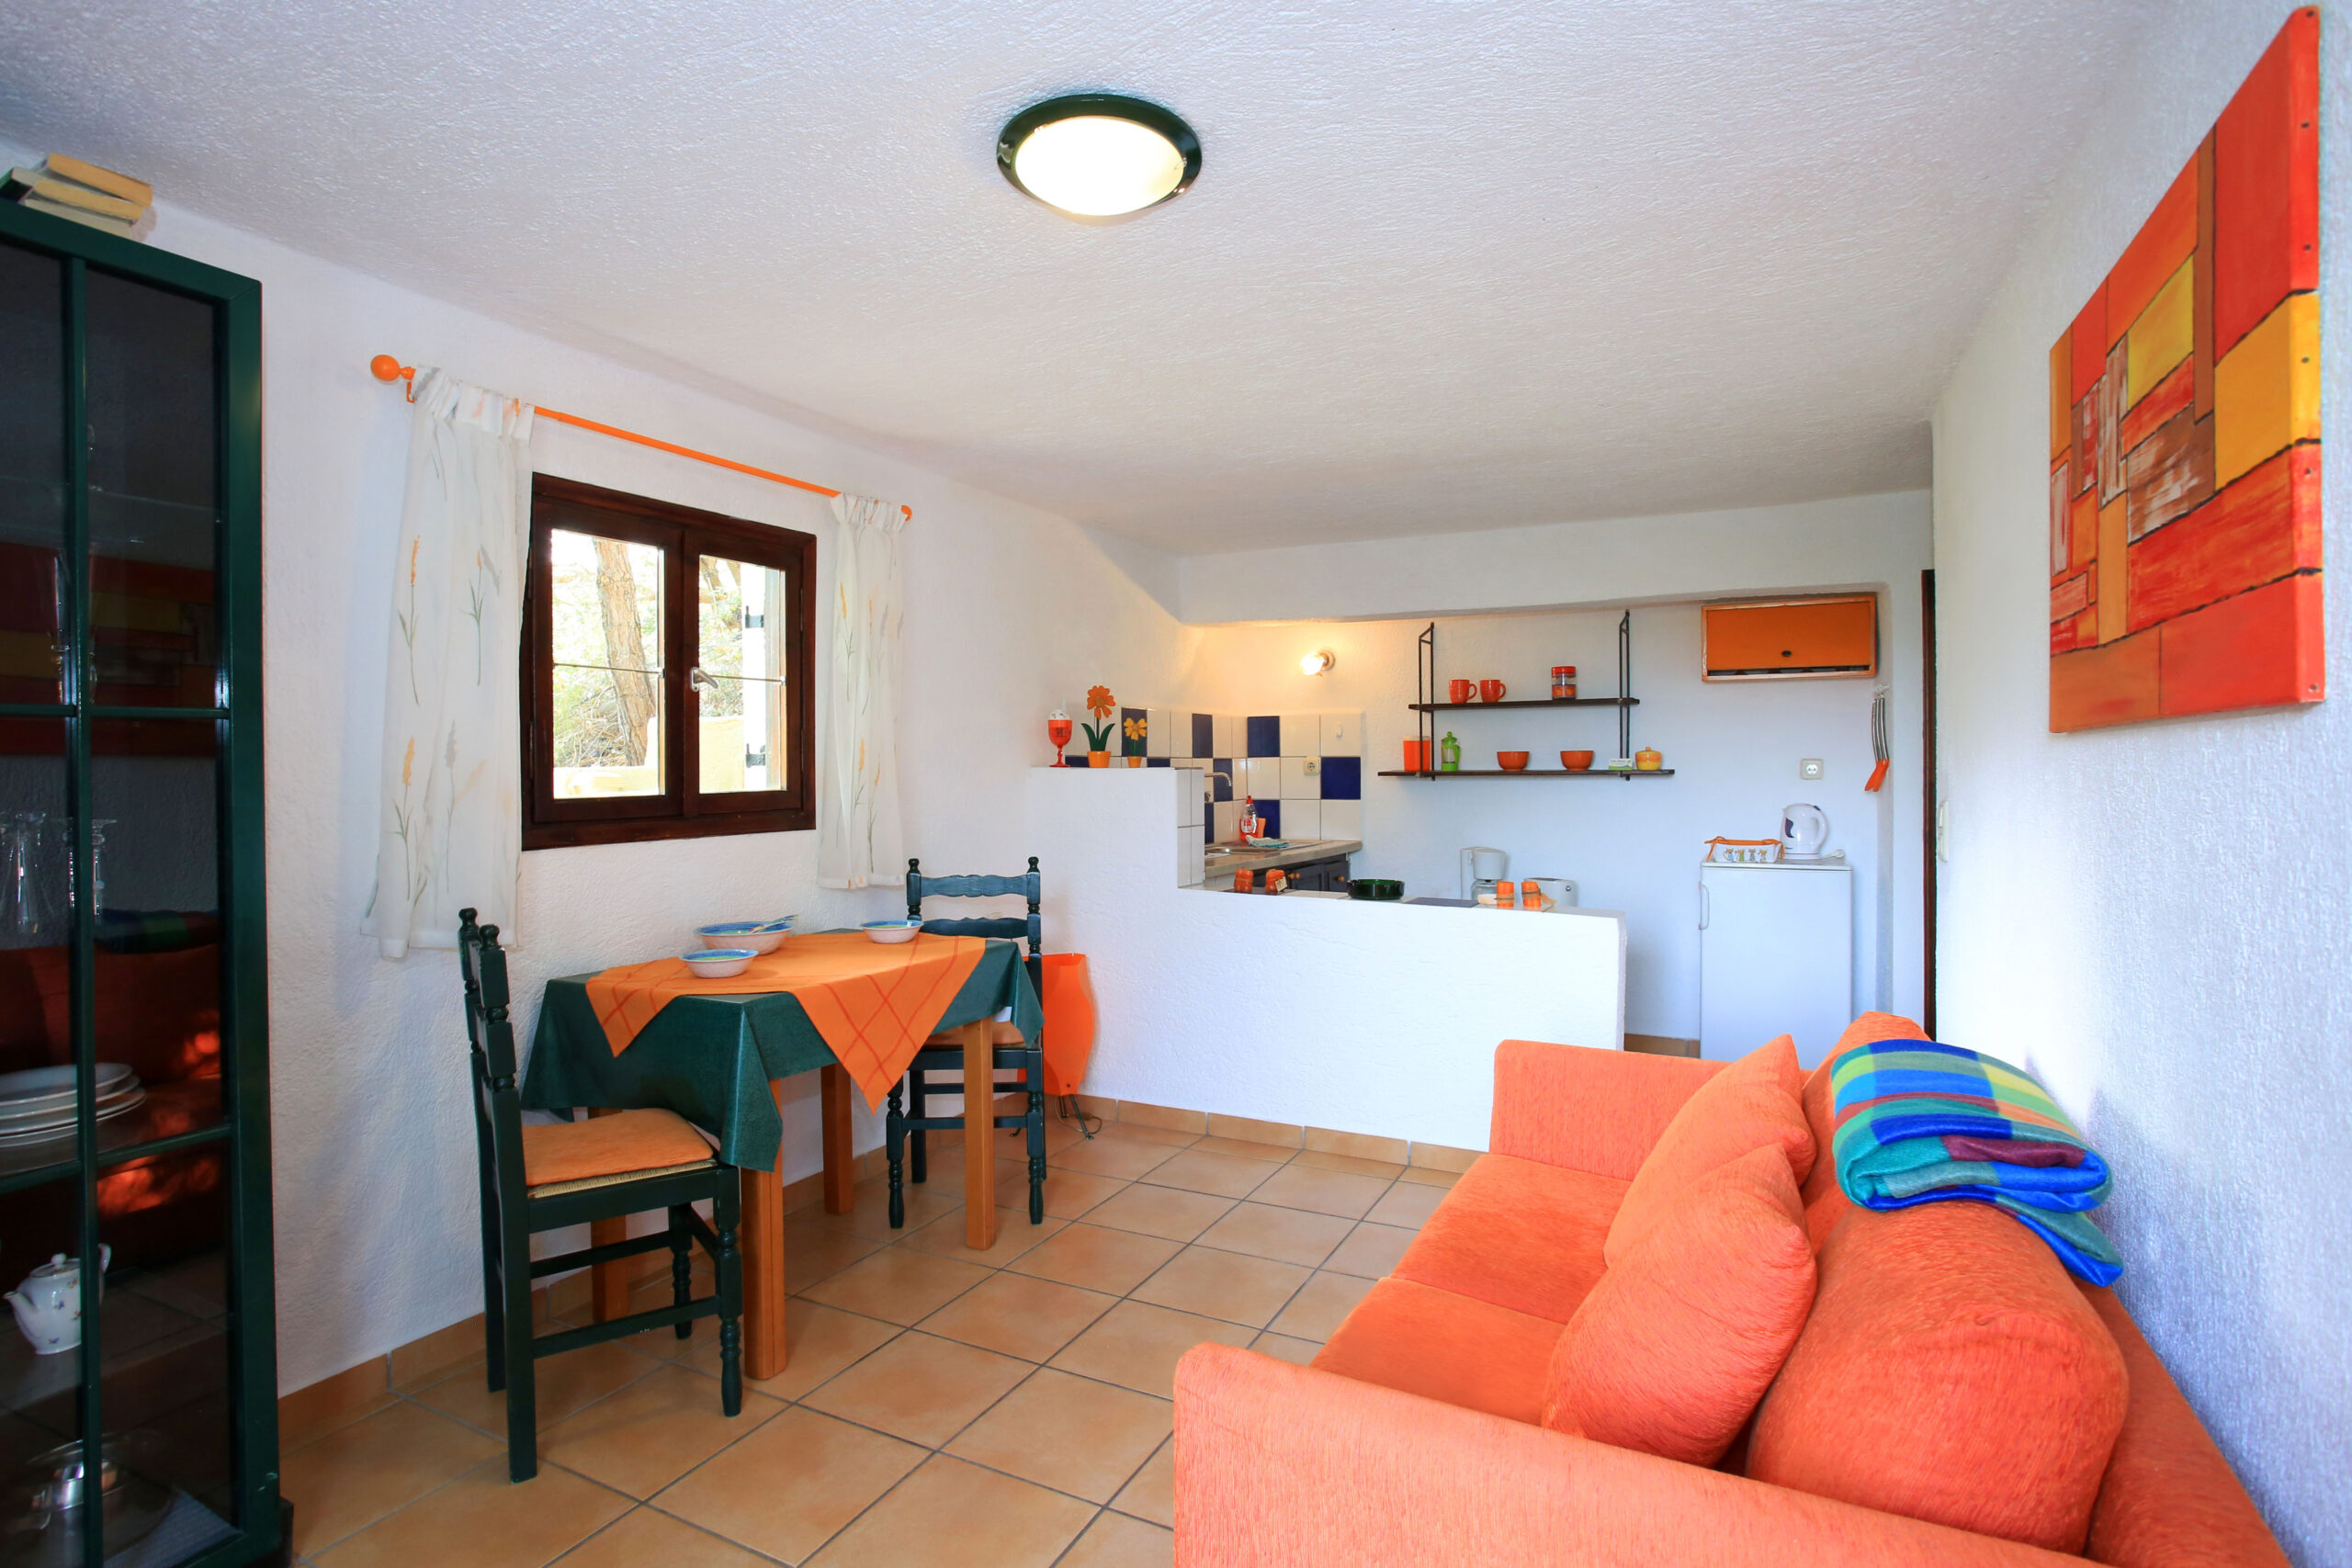 Economy Apartment Ground Floor - Villa Galini Apartments Agios Nikolaos, Crete, Greece